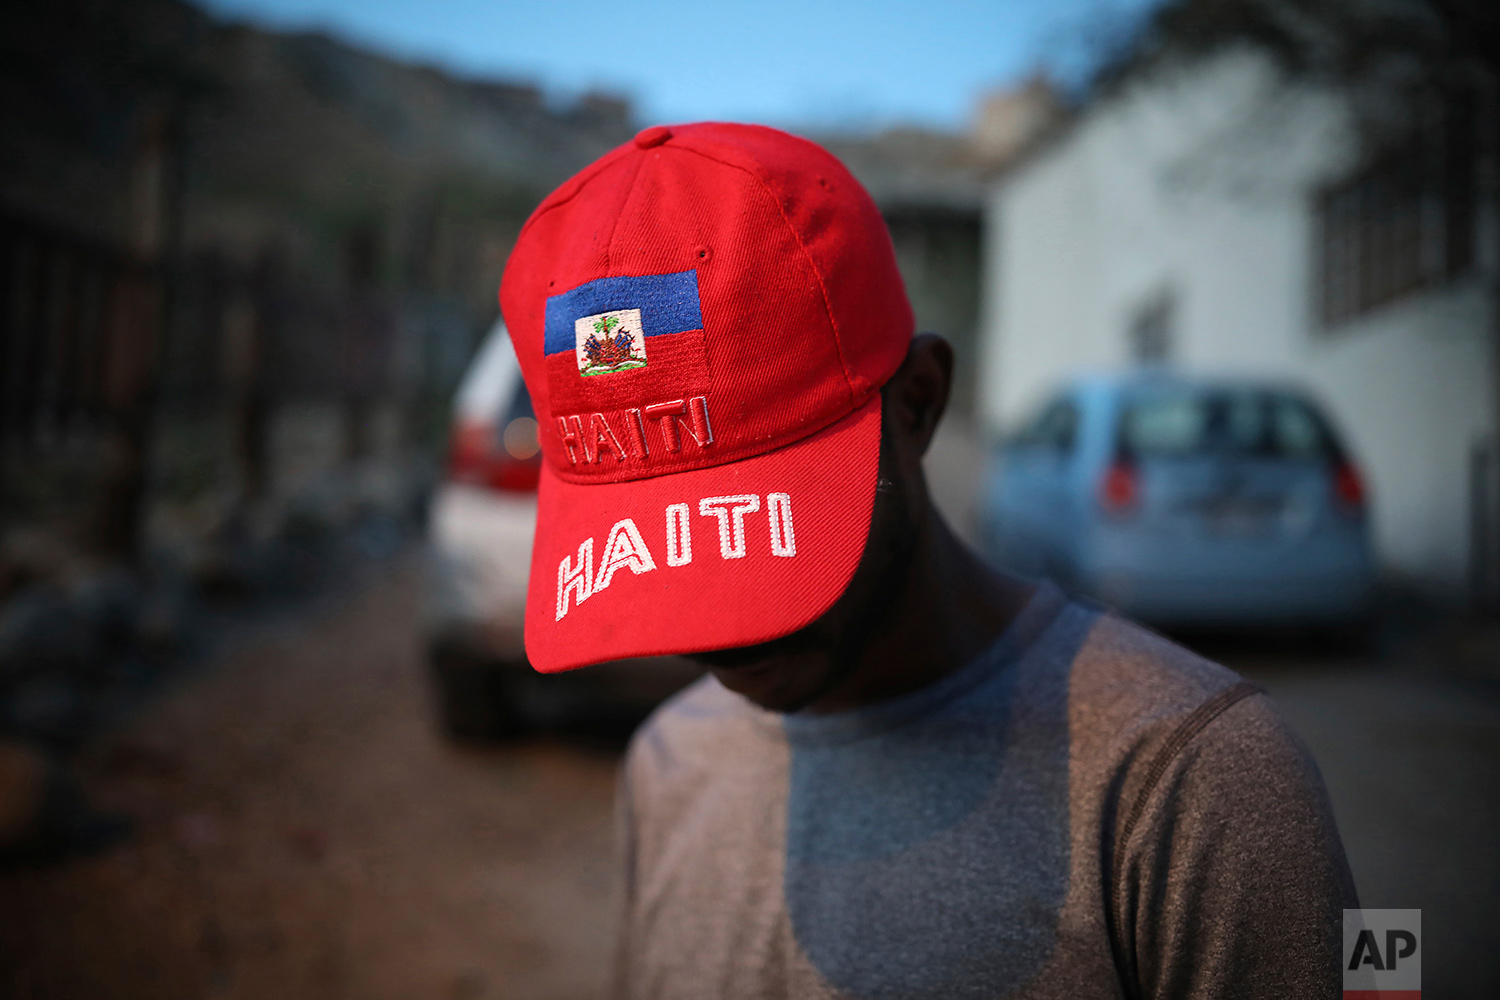 Pierre Franzzi shows off a red cap with his country's flag emblazoned on it outside the Ambassadors of Jesus Church in Tijuana, Mexico, May 4, 2018.(AP Photo/Emilio Espejel)